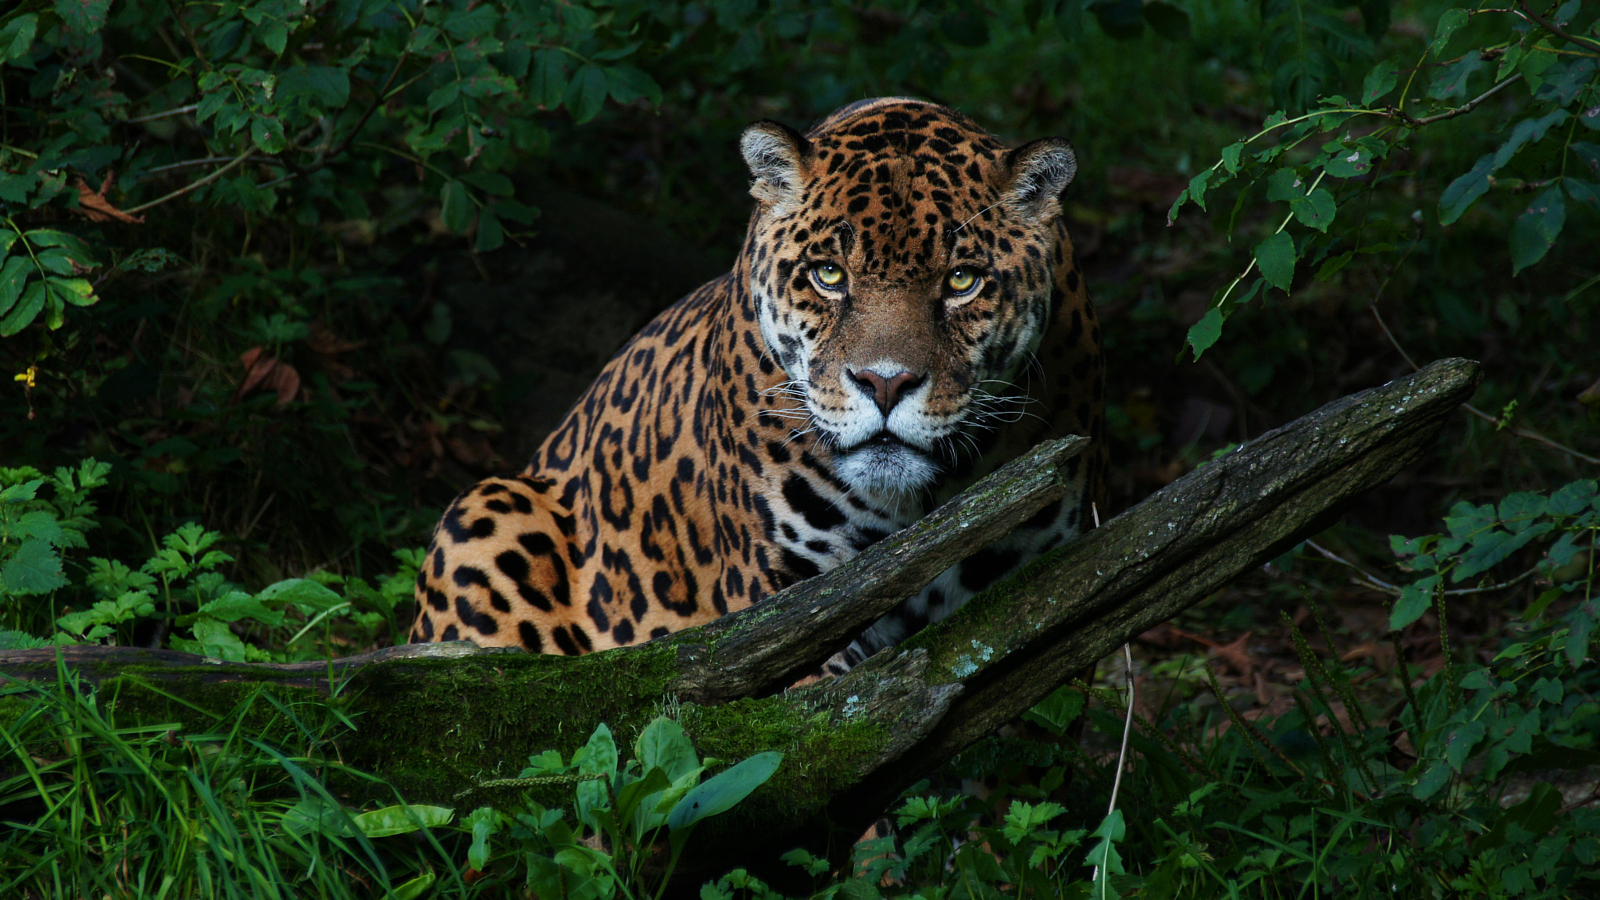 Hugo's Story: Stared Down by Sovereign the Jaguar